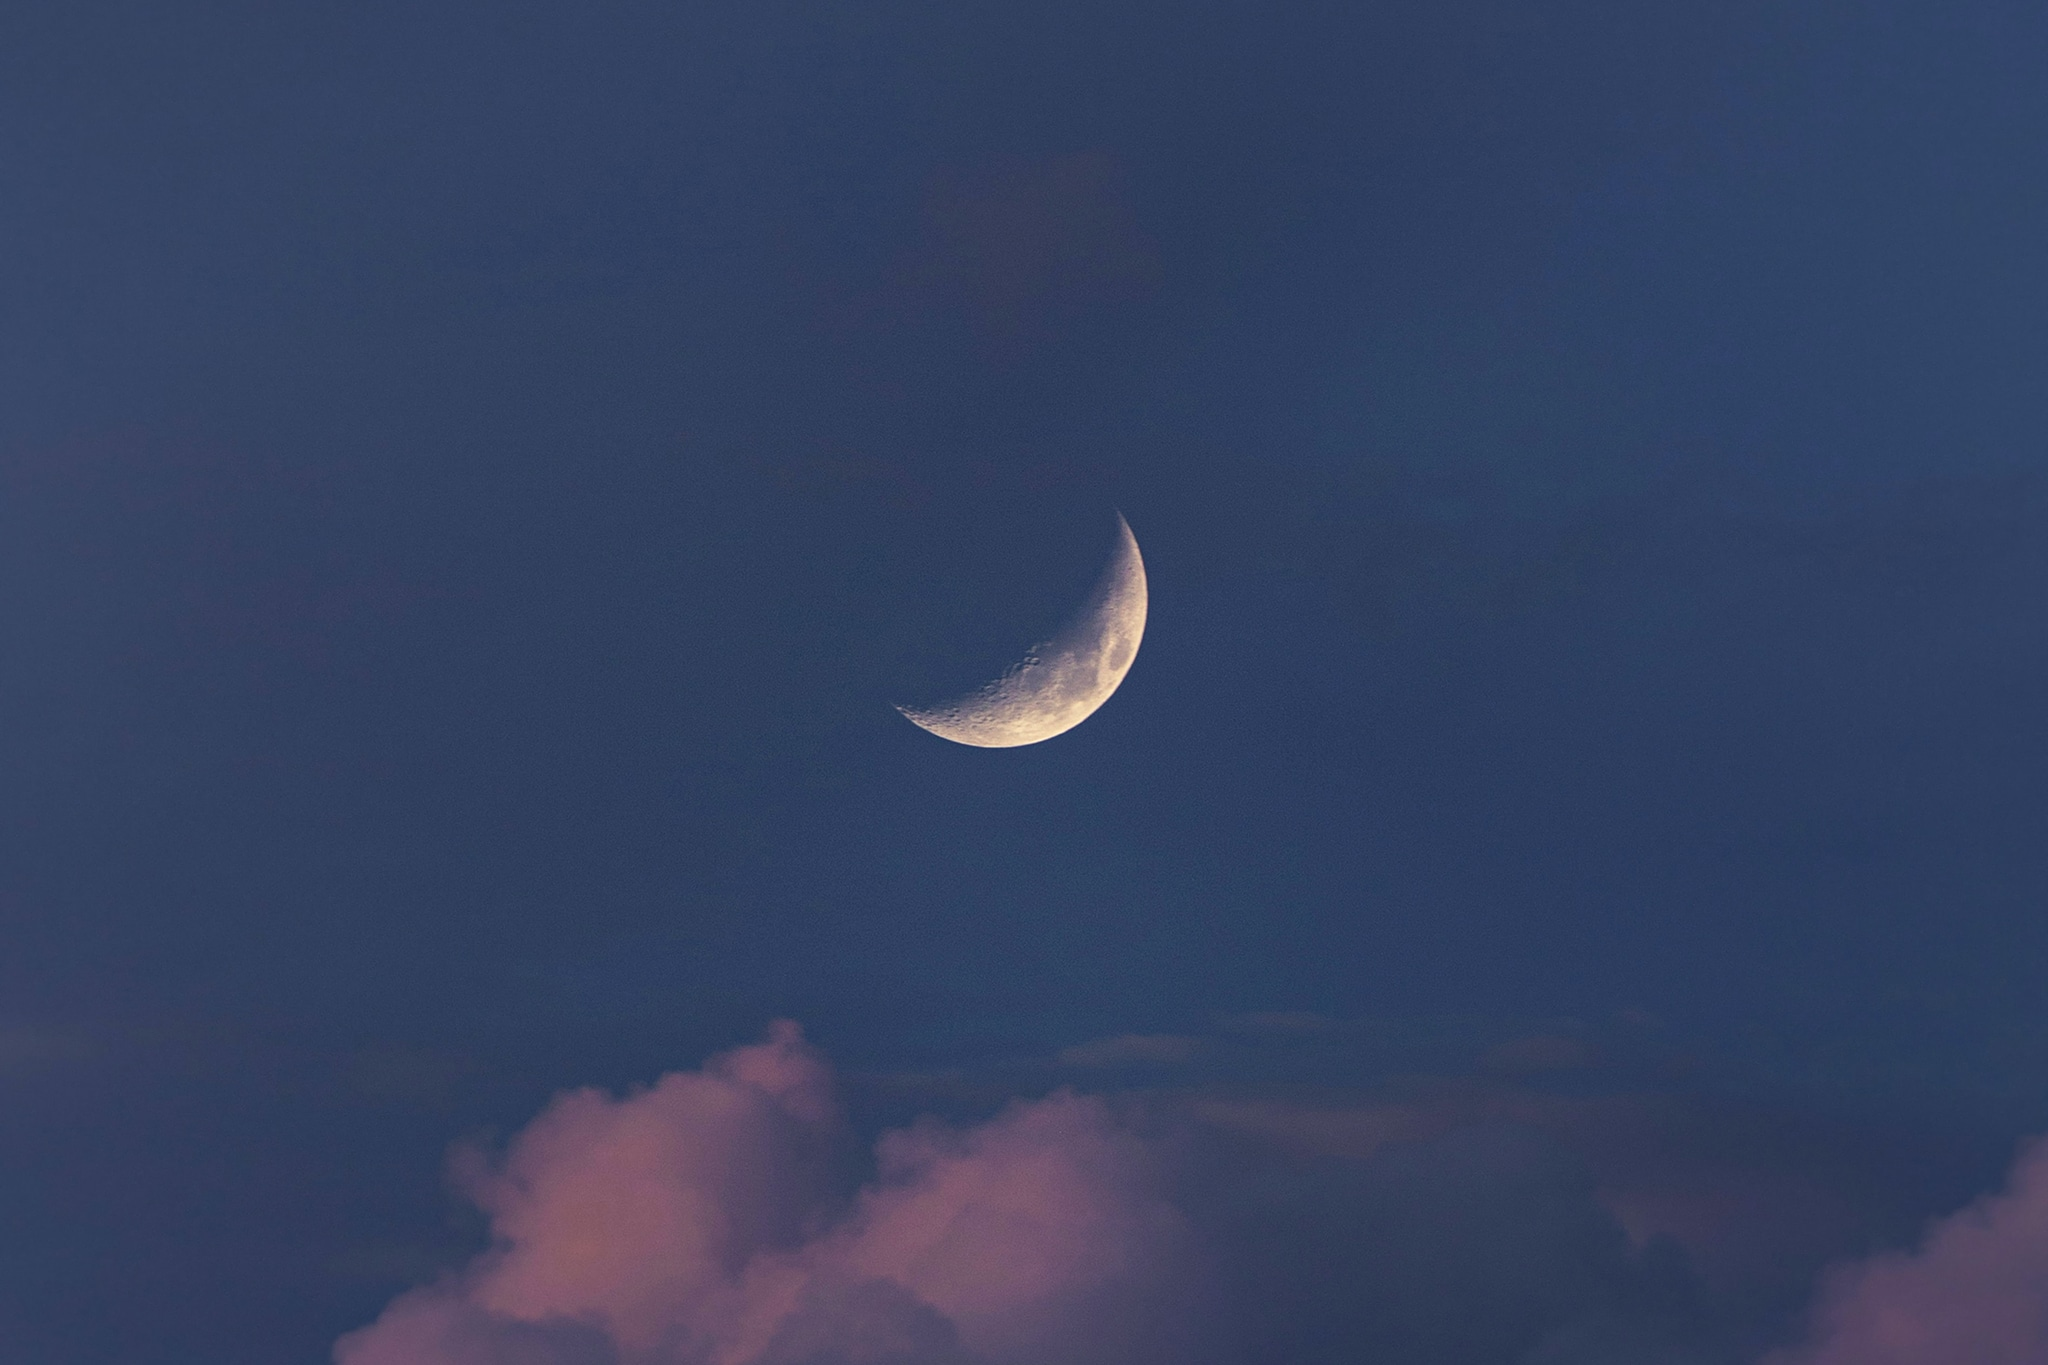 Crescent moon among clouds in dark sky, signalling the blog goals and intentions I set for this site in June 2020